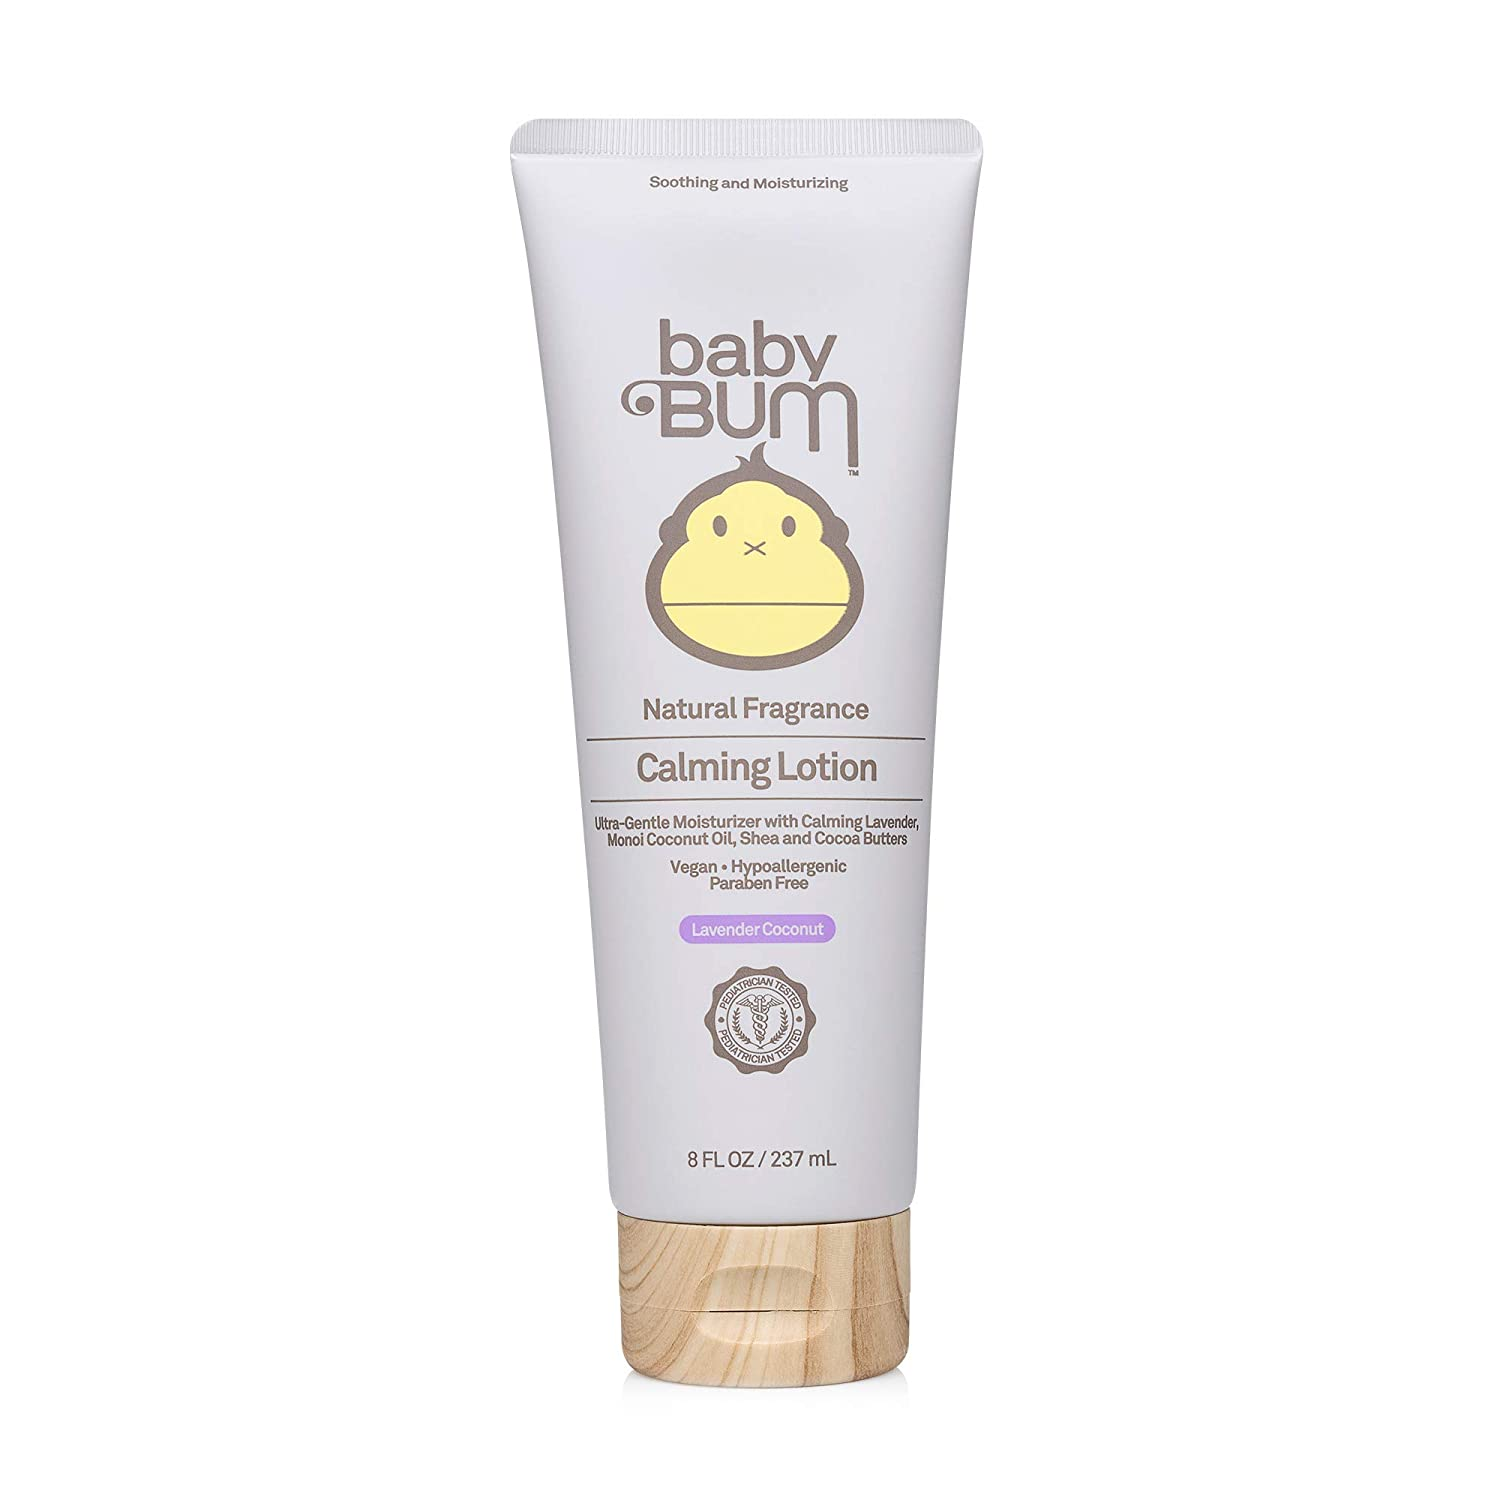 Baby Bum Calming Lotion | Moisturizing Baby Body Lotion for Sensitive Skin with Shea and Cocoa Butter| Lavender Coconut Fragrance| Gluten Free and Vegan | 8 FL OZ